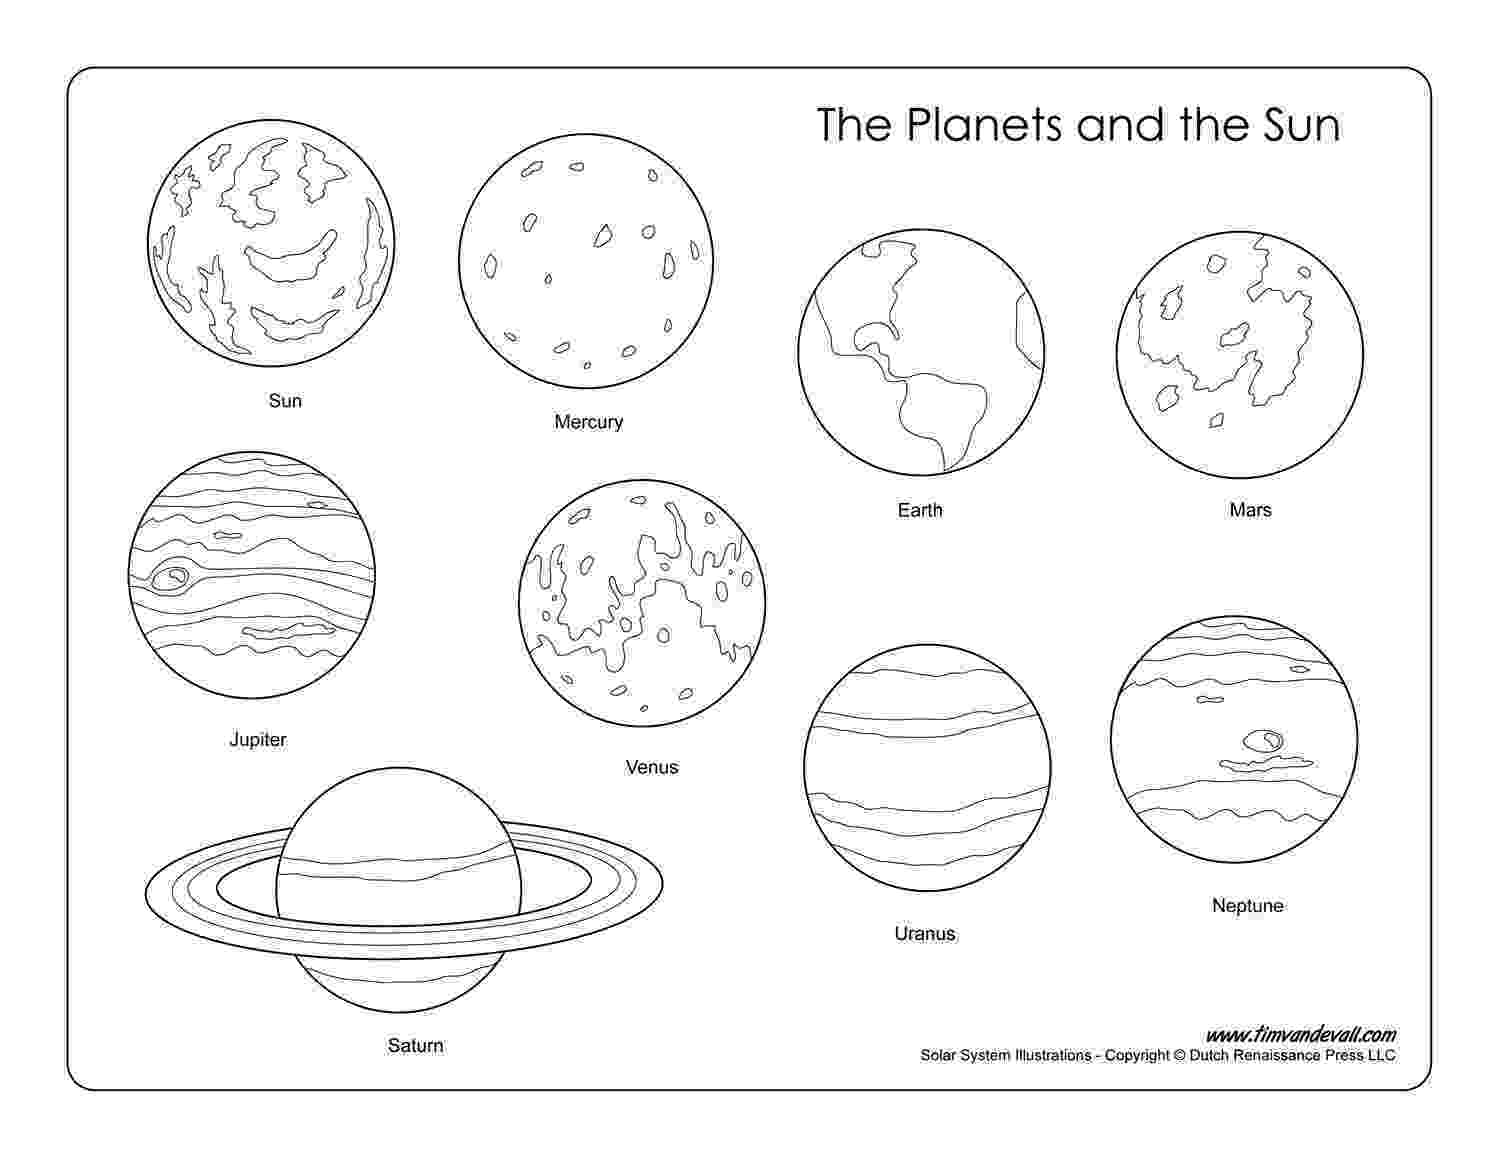 planets coloring sheets free printable planet coloring pages for kids coloring sheets planets 1 2